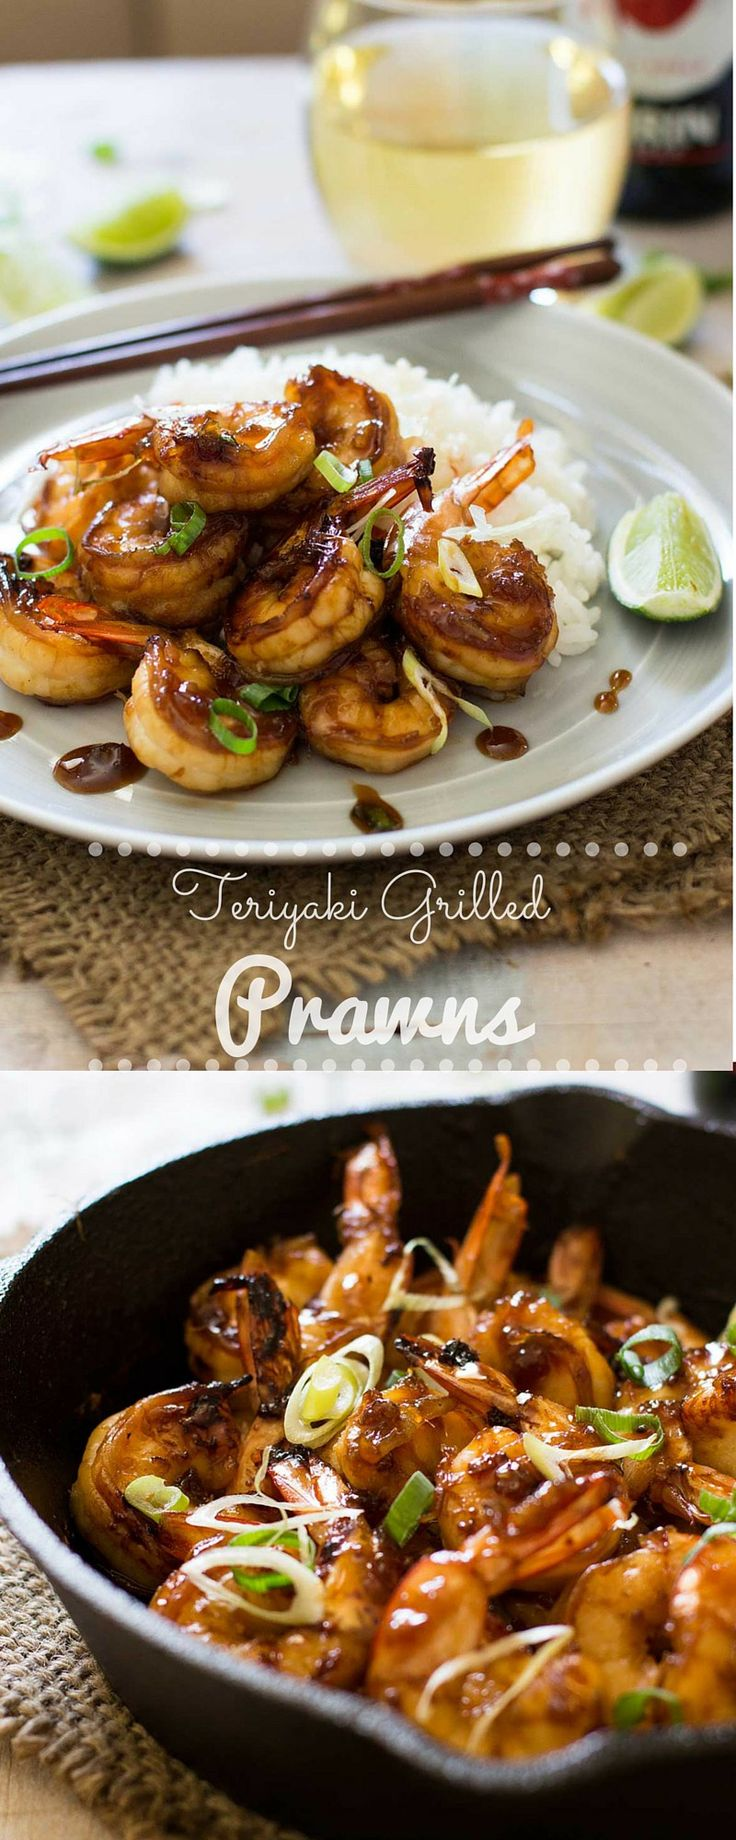 These  delicious Japanese teriyaki grilled prawns are  perfect for any occasion and use a super simple and authentic teriyaki sauce!